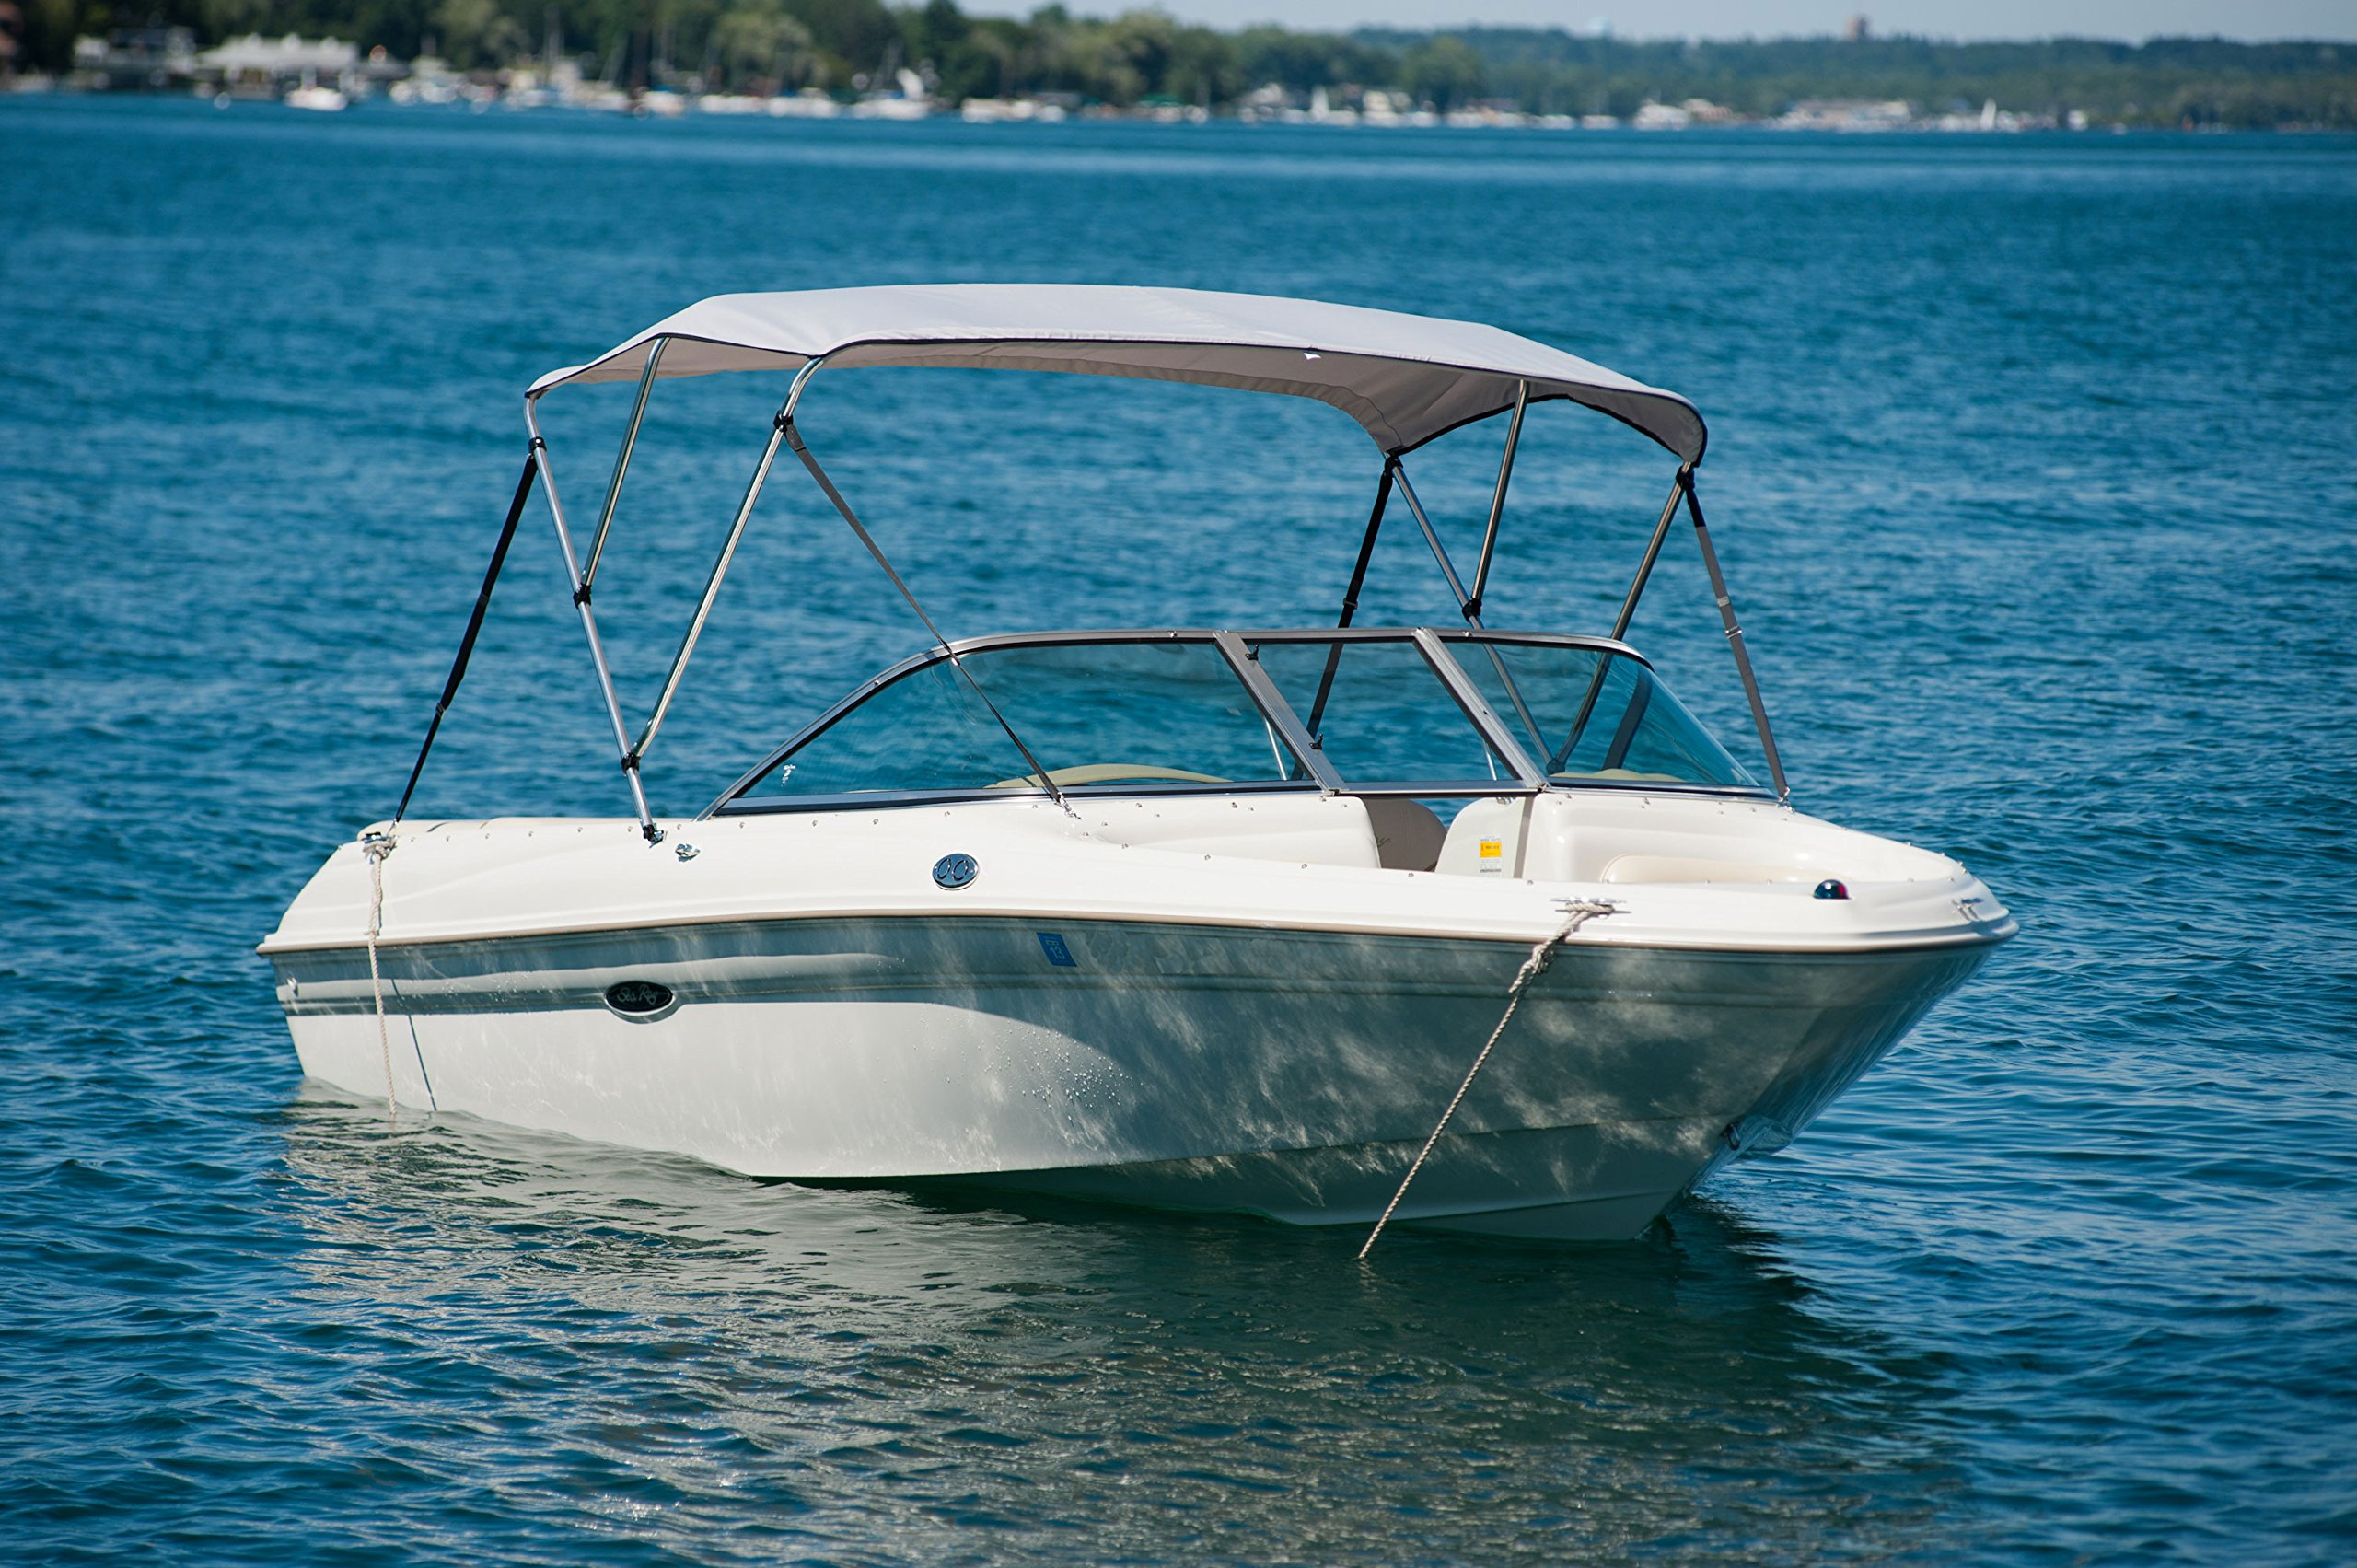 Komo Covers Boat Bimini Top Cover, 46 inches High by 6 feet Long by 61 to 66 inches Wide with Boot and Hardware (Grey) by Komo Covers